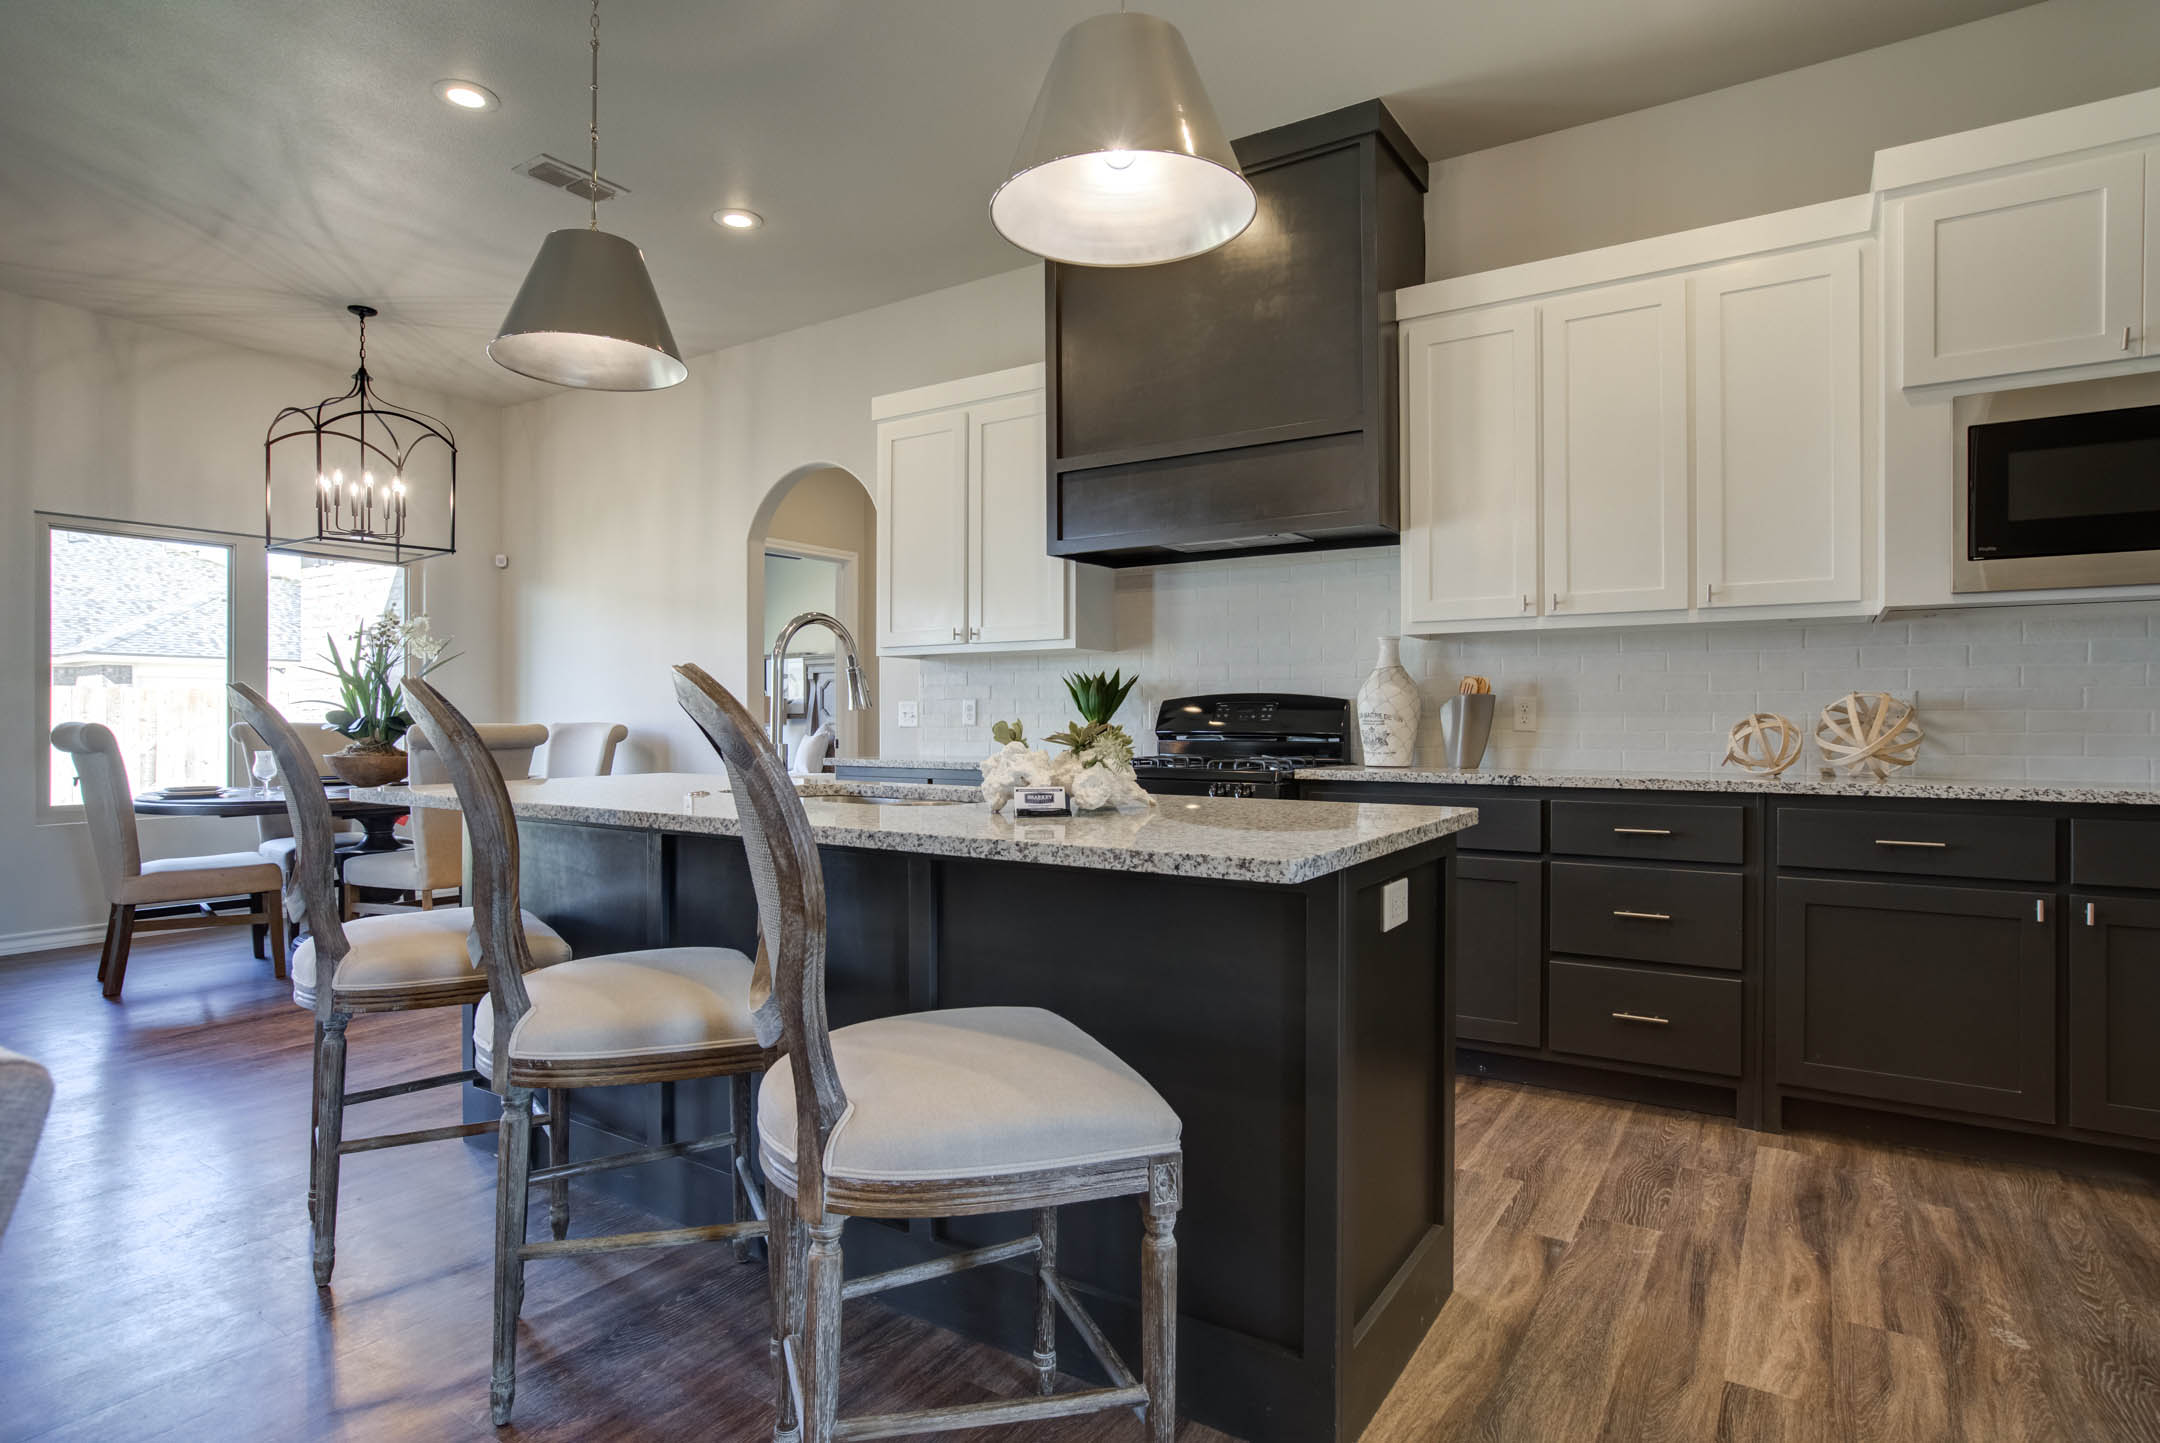 Spacious kitchen in new home for sale in Lubbock, Texas.